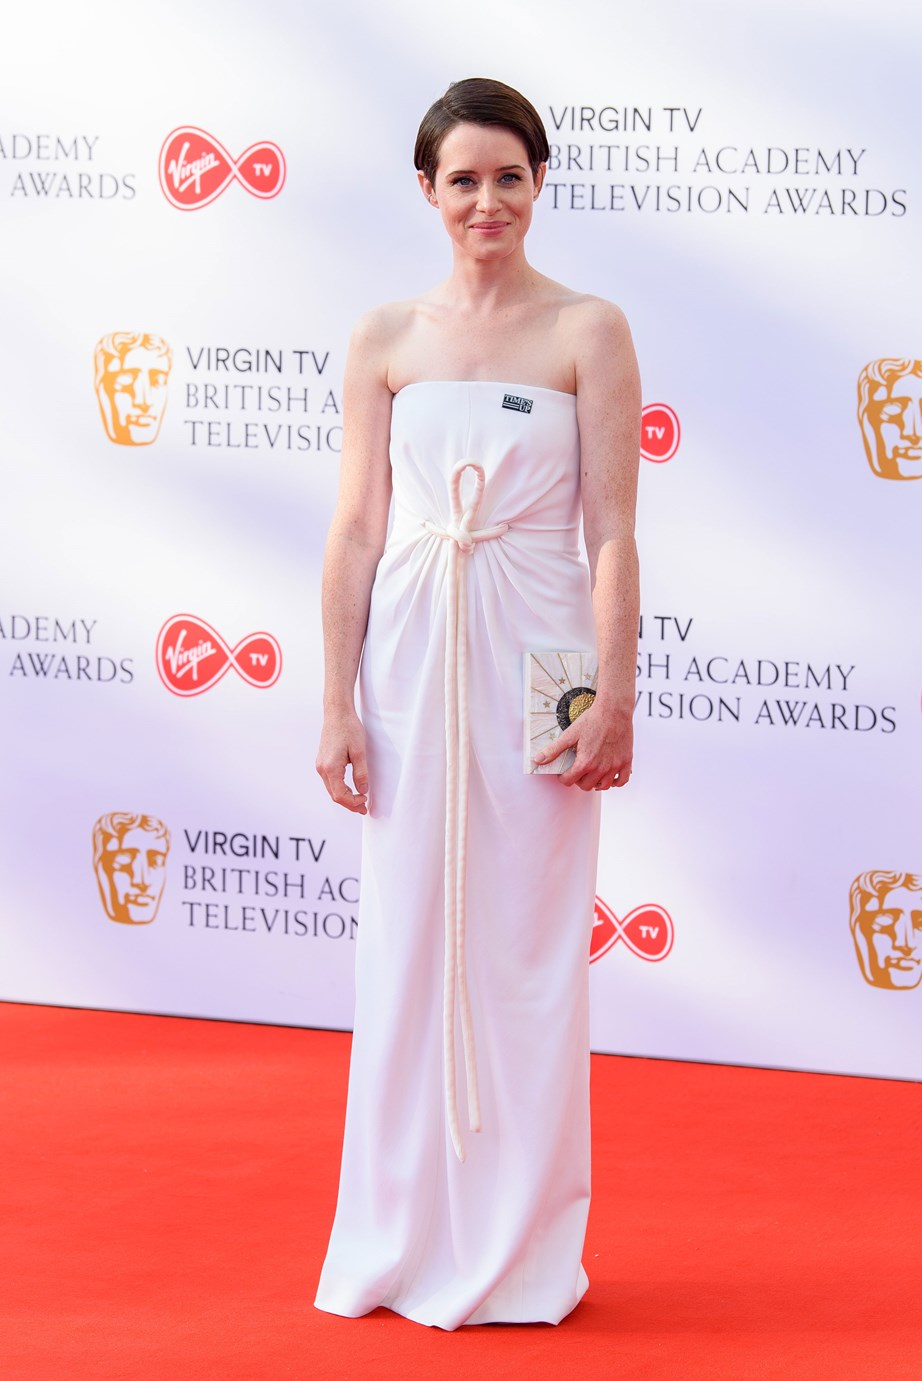 For the 2018 Britain Academy Television Awards Foy wore a white Rosetta Getty gown adorned with a Times Up sticker.